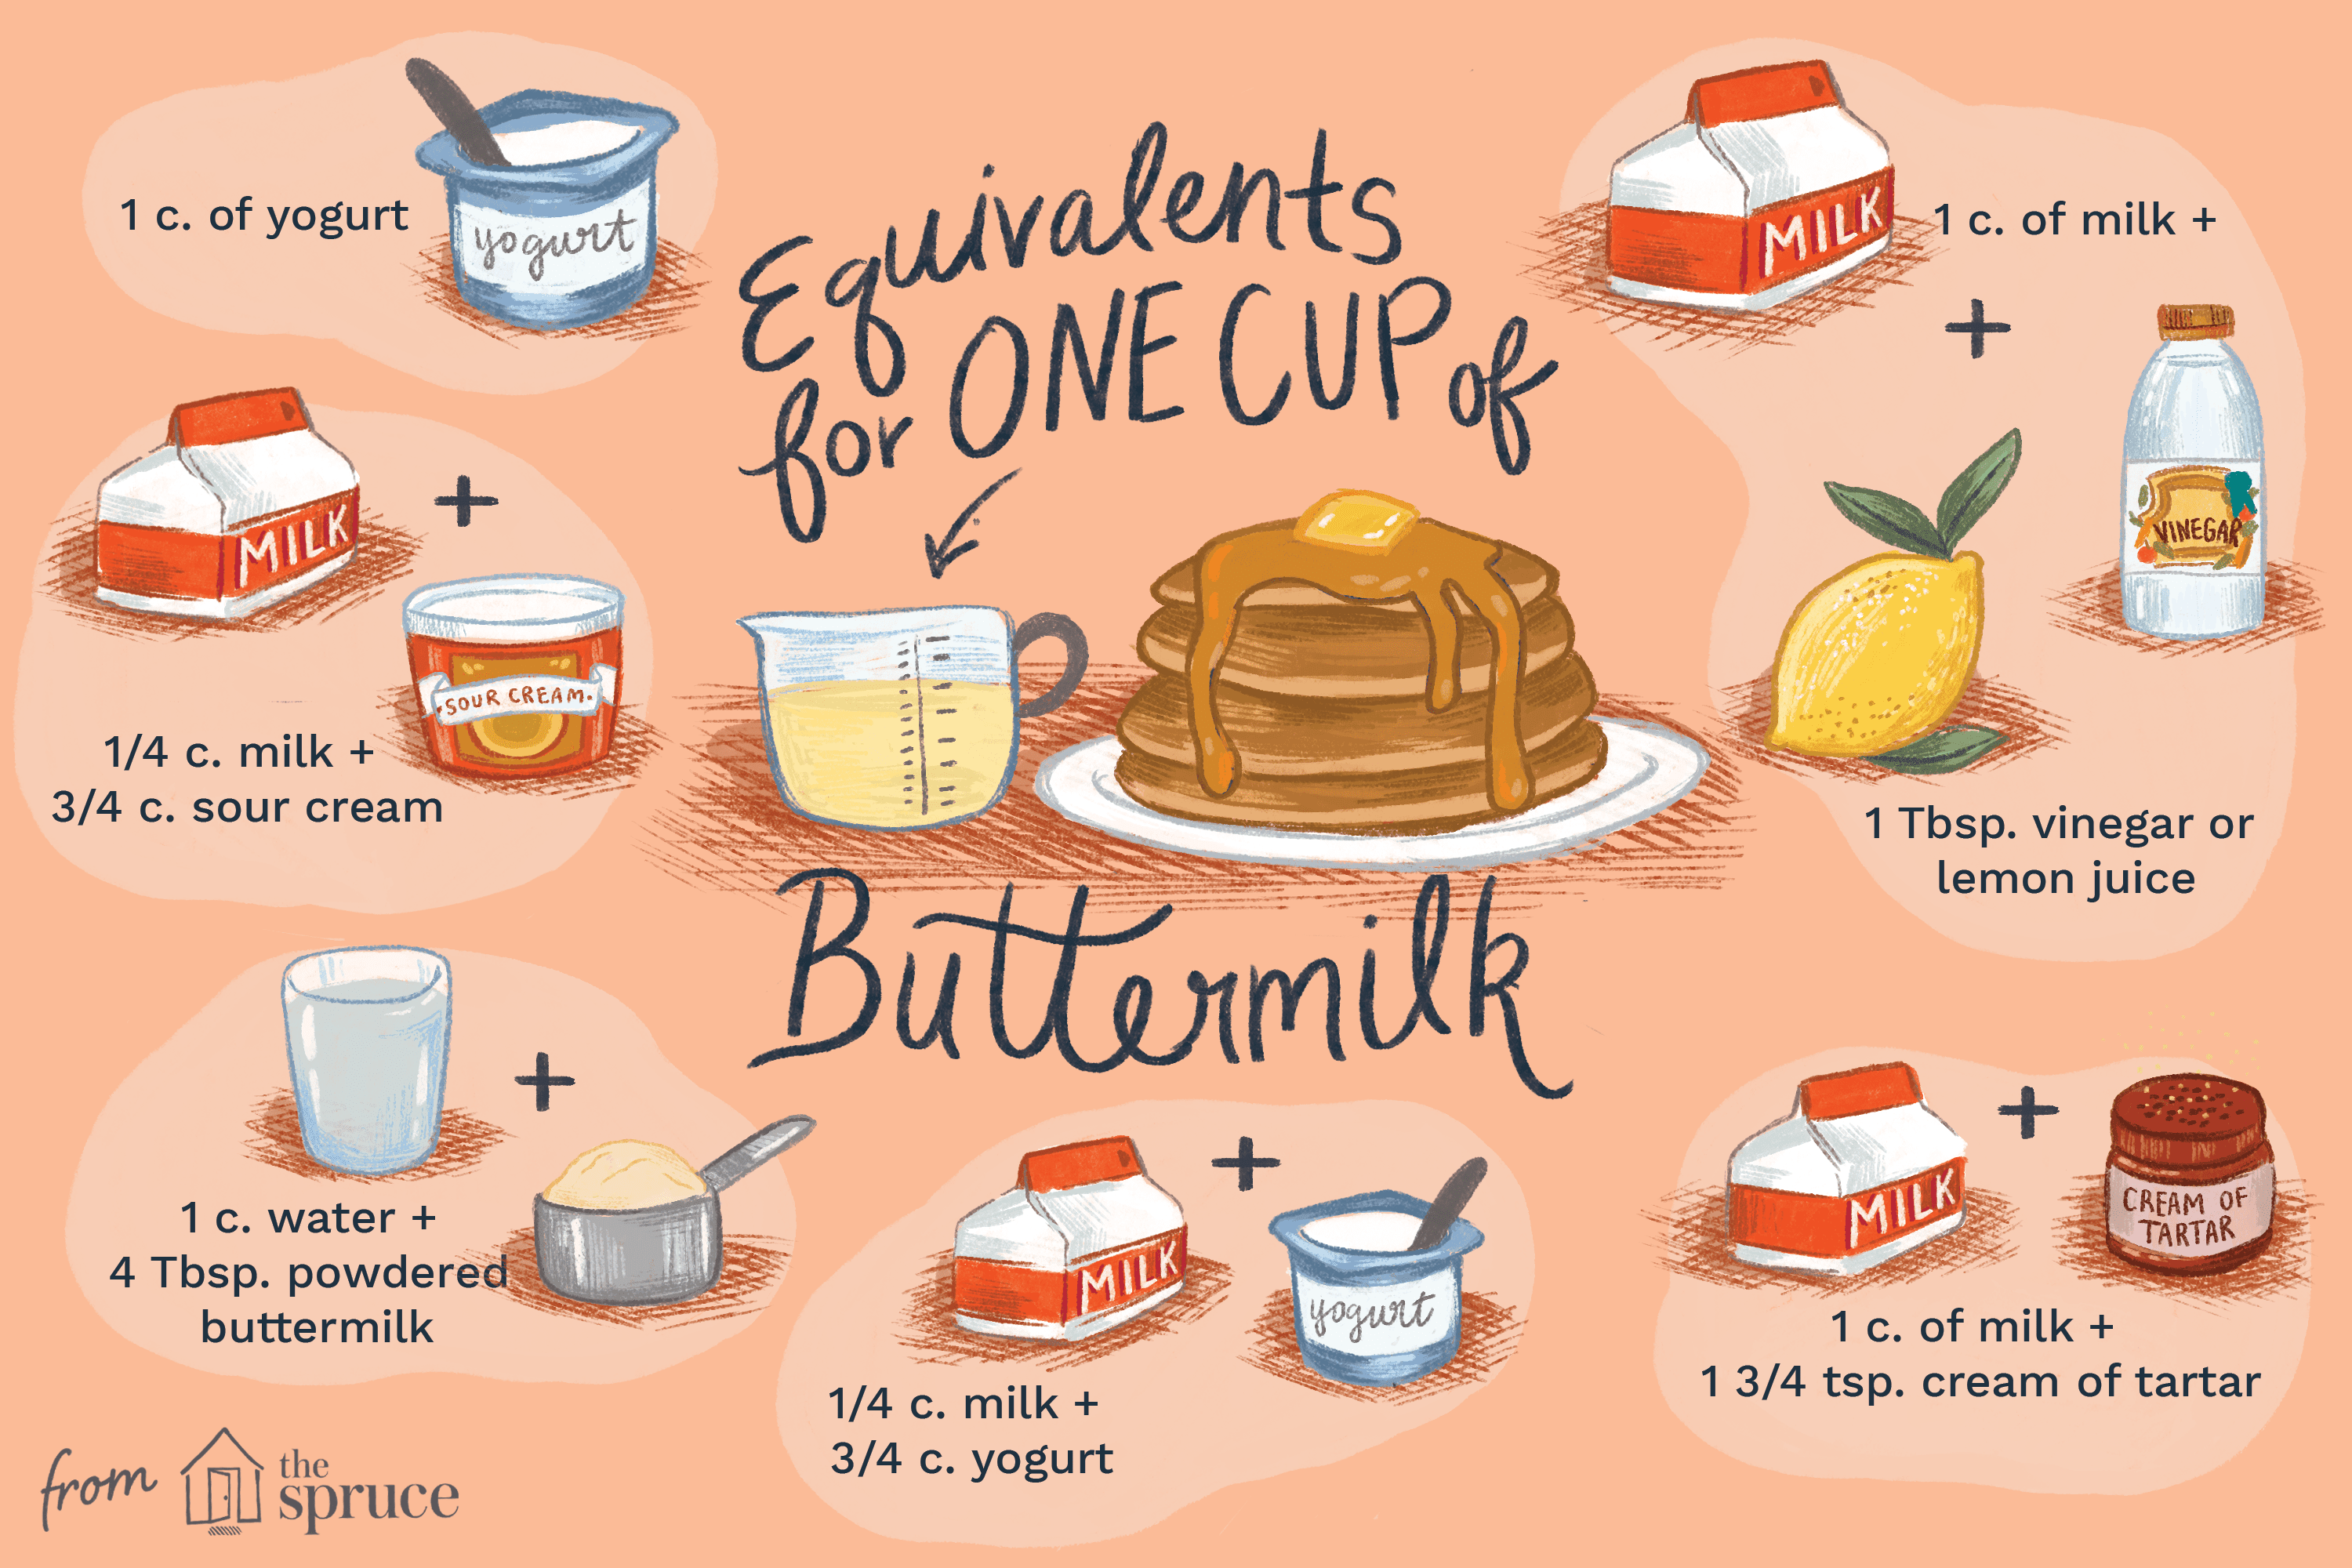 Buttermilk Substitutions, Measures and Equivalents